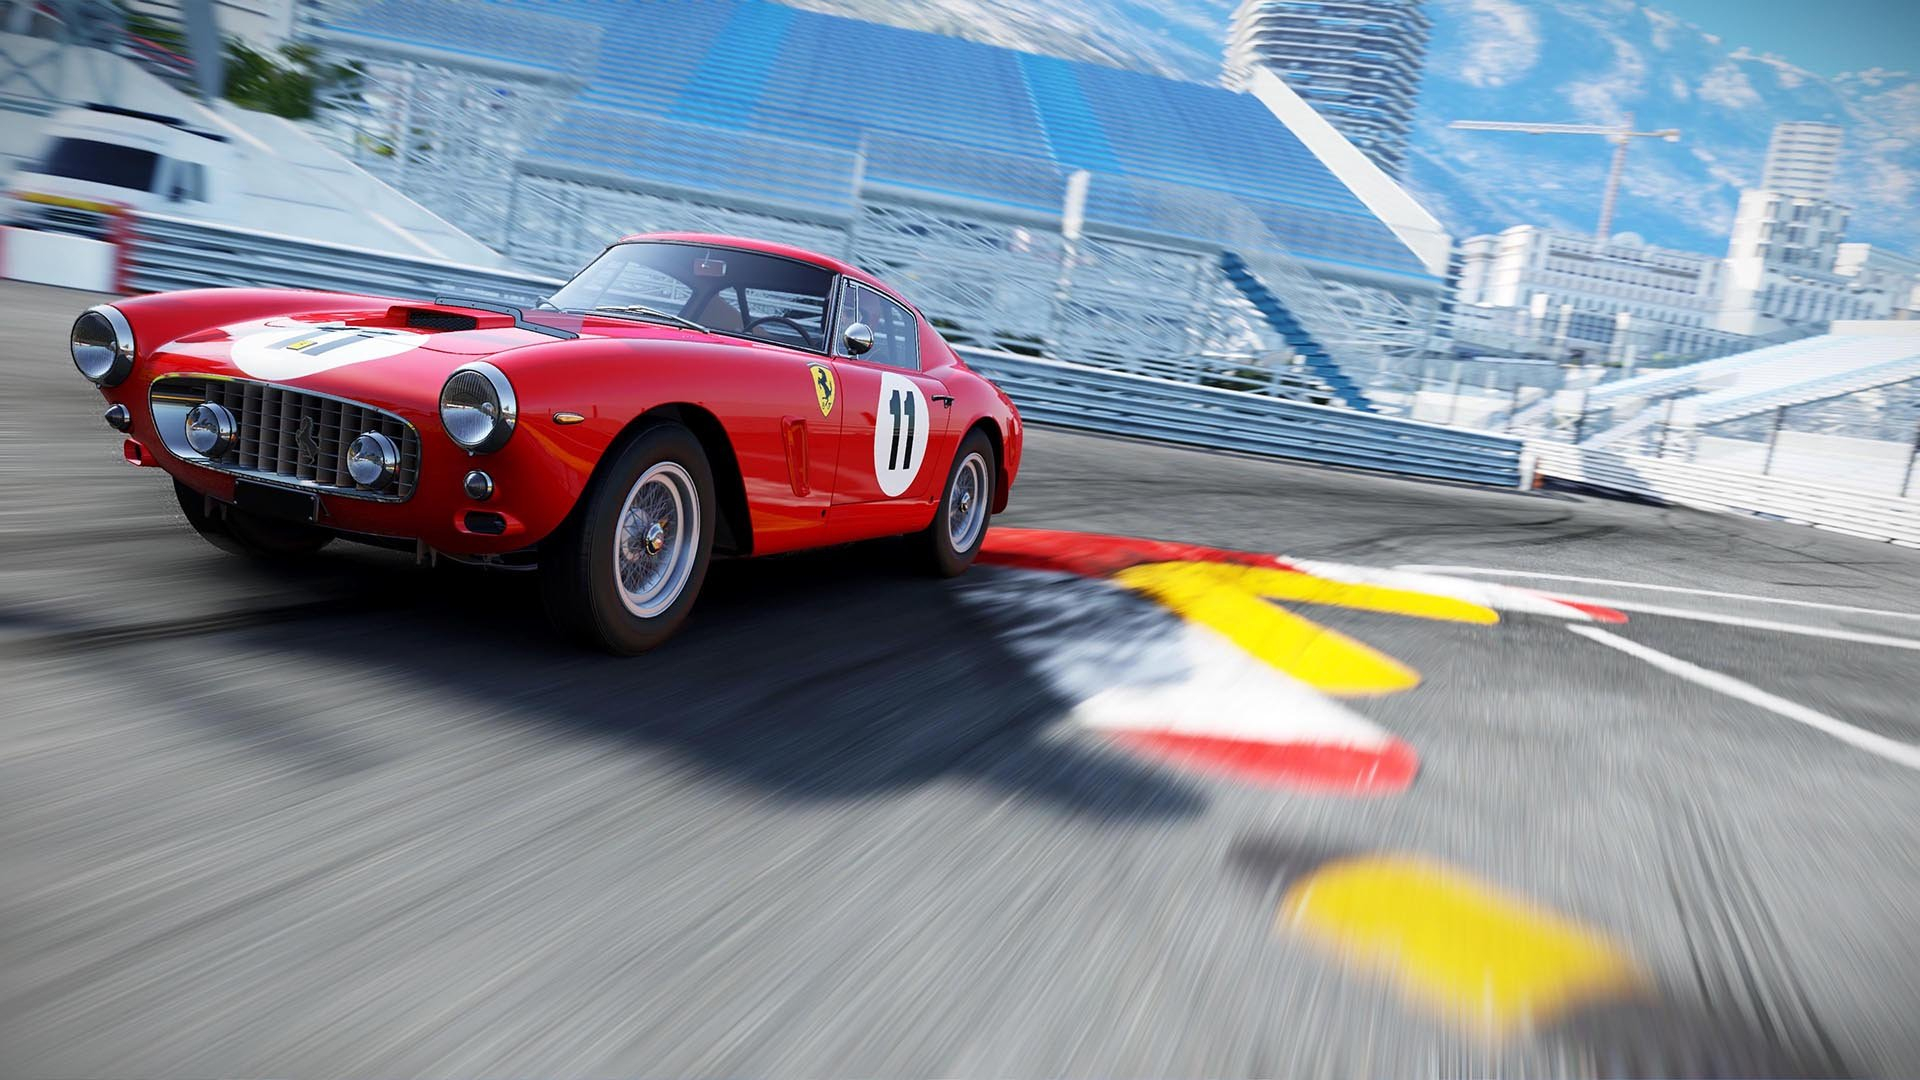 Don't Expect Project Cars 3 In 2019: Here's Why That's A Good Thing Cars 3 Calendar 2019